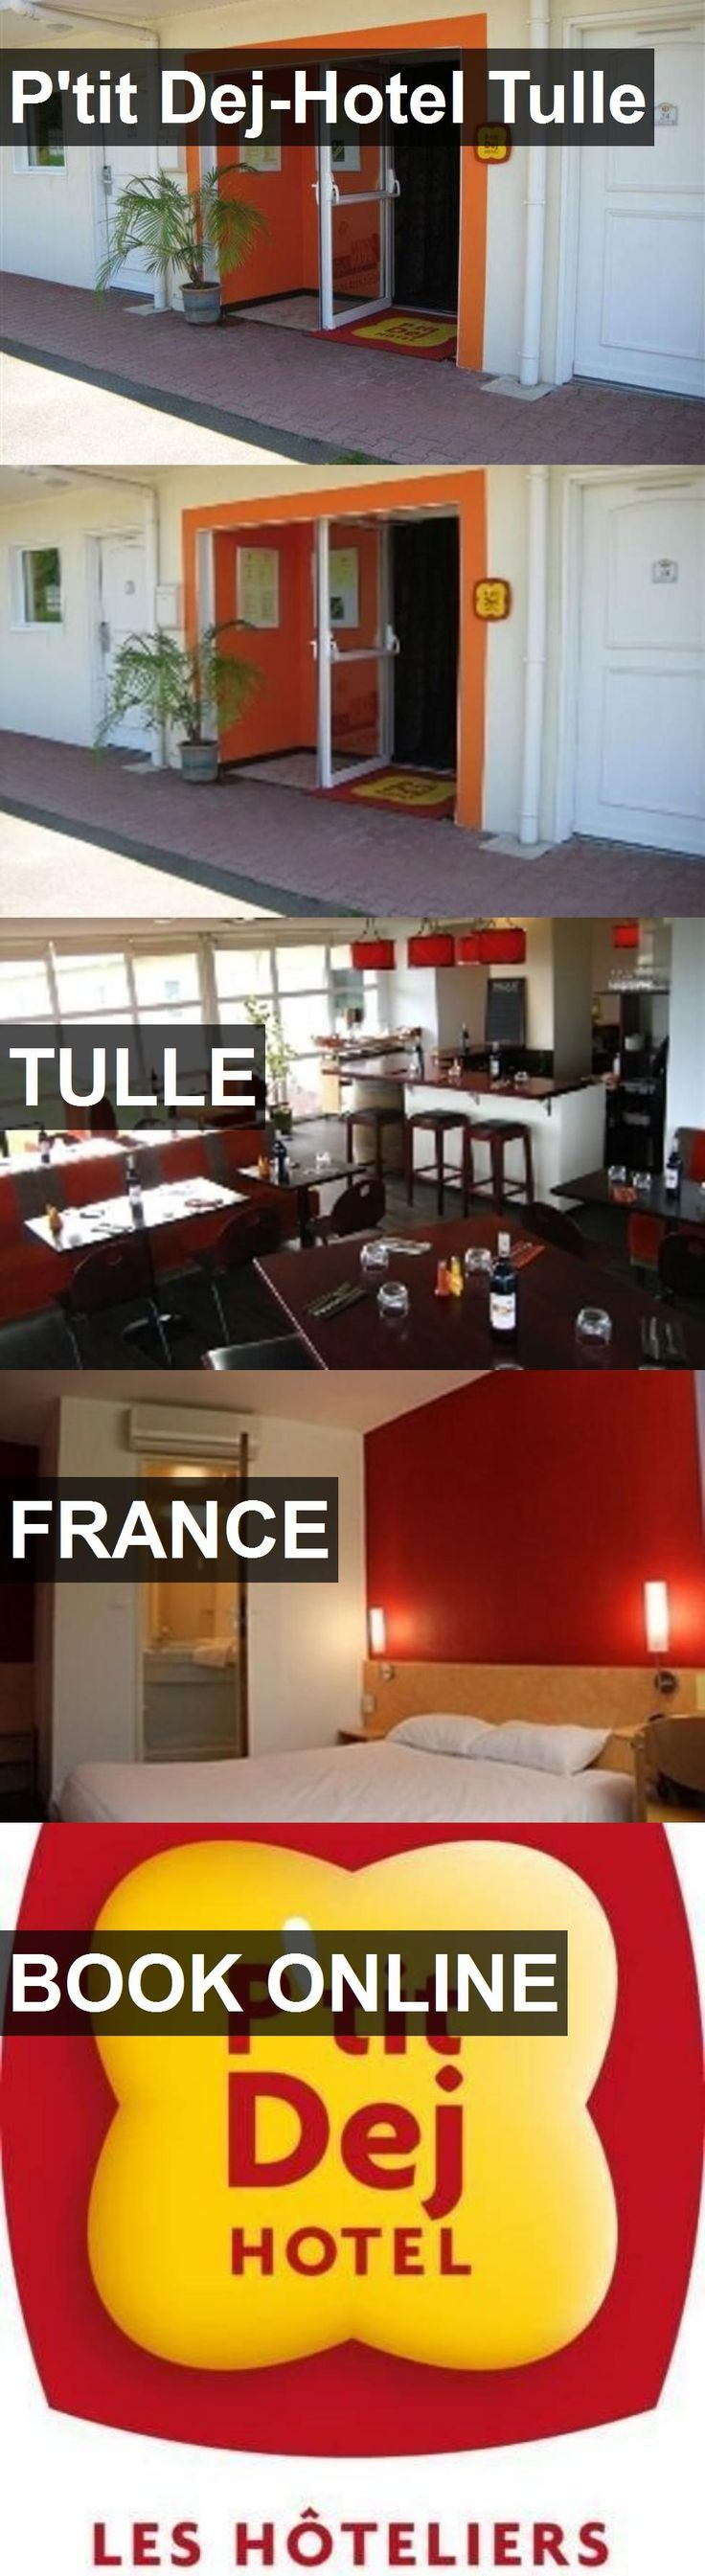 P'tit Dej-Hotel Tulle in Tulle, France. For more information, photos, reviews and best prices please follow the link. #France #Tulle #travel #vacation #hotel